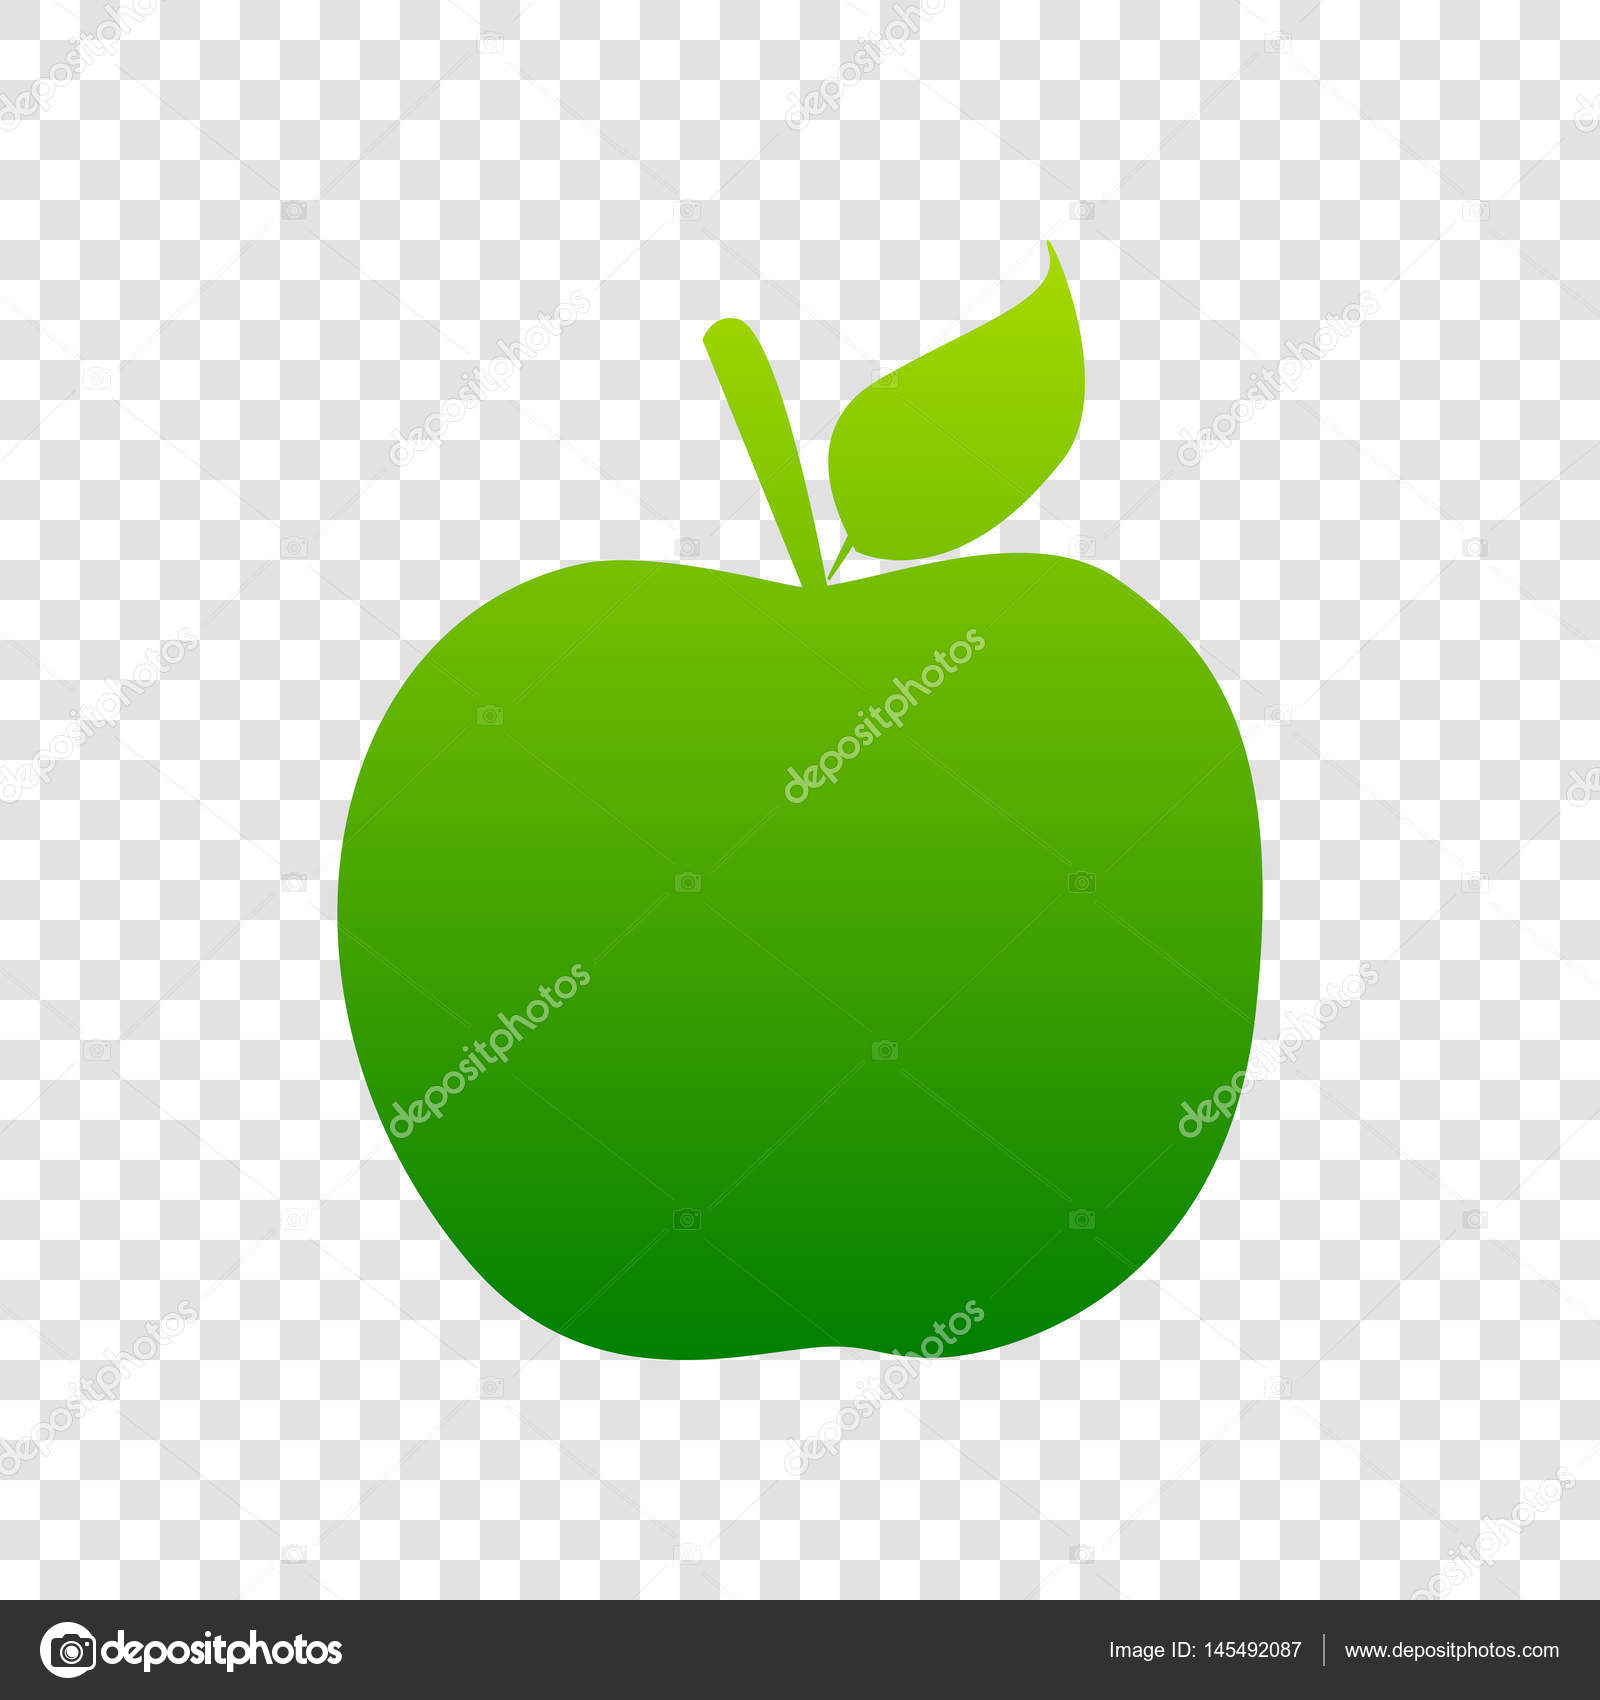 apple sign illustration. vector. green gradient icon on transparent